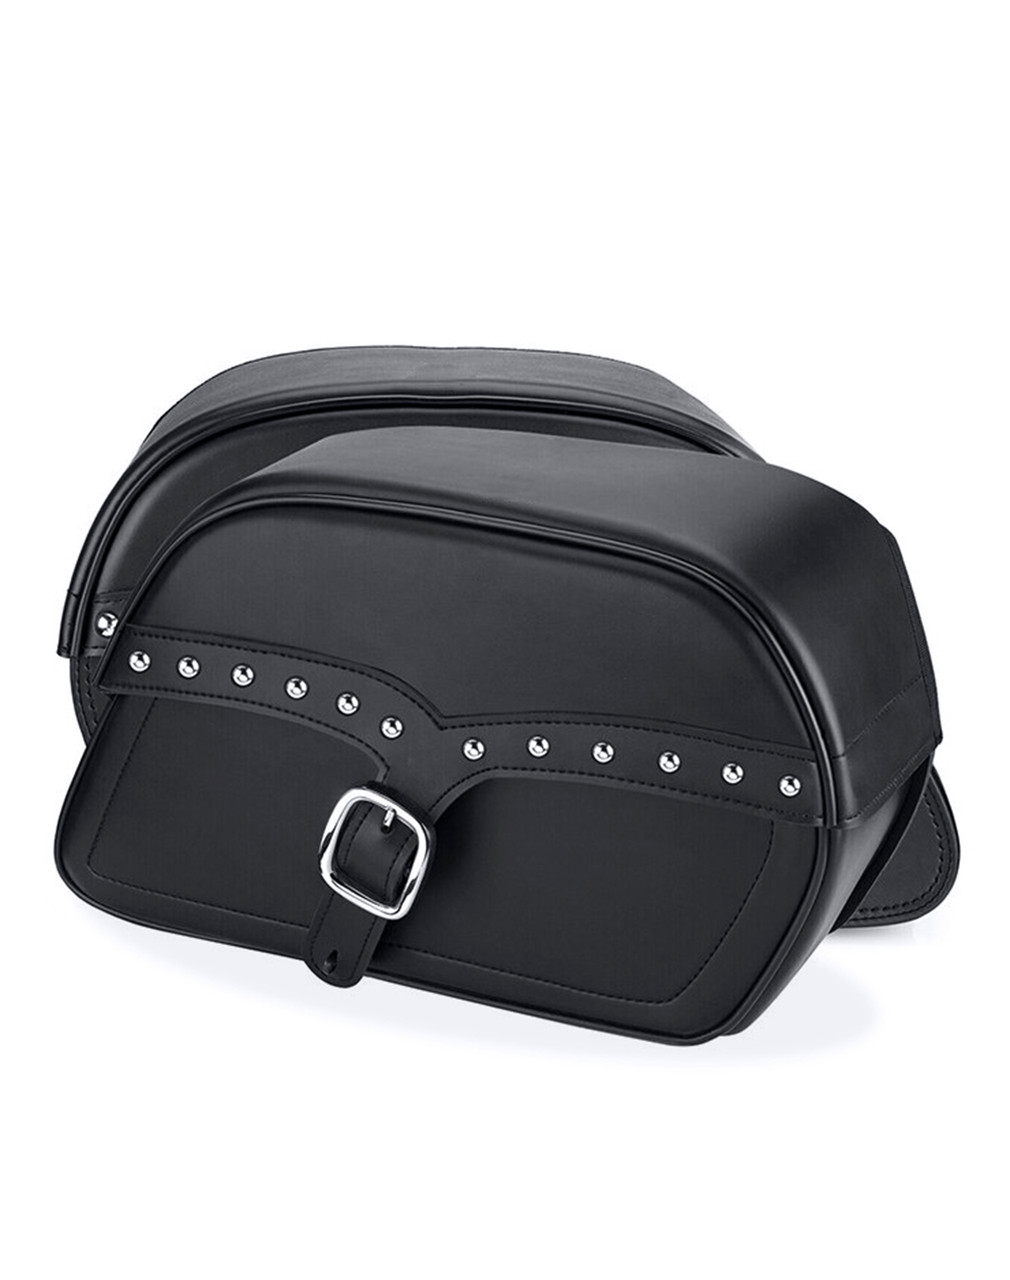 Viking Large SS Slanted Studded Motorcycle Saddlebags For Harley Softail Custom FXSTC Both Bags View